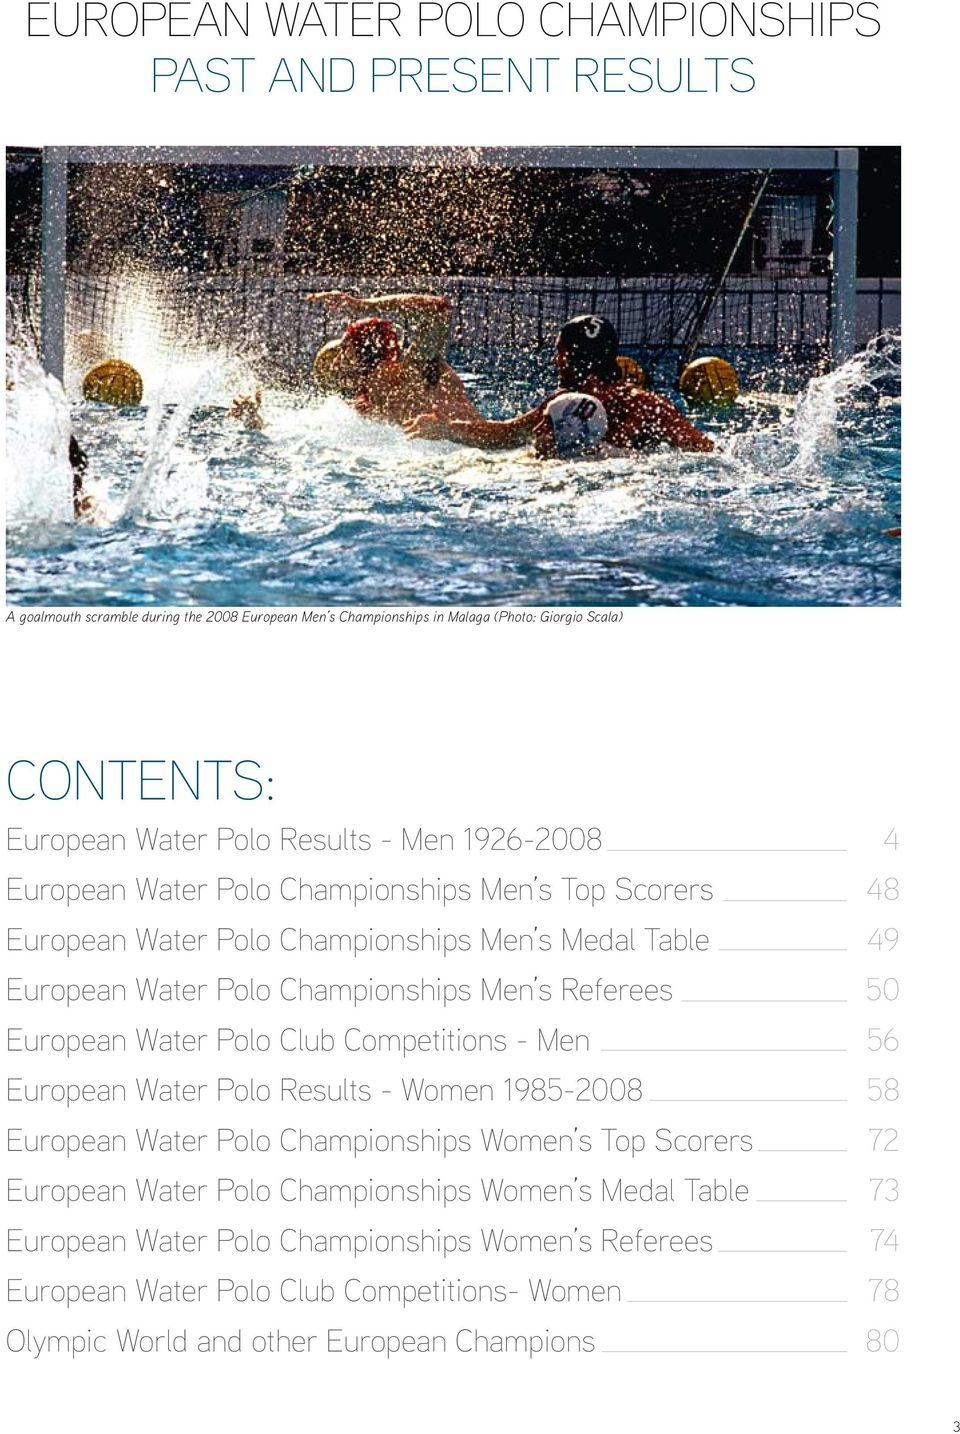 Referees 50 European Water Polo Club Competitions - Men 56 European Water Polo Results - Women 1985-2008 58 European Water Polo Championships Women s Top Scorers 72 European Water